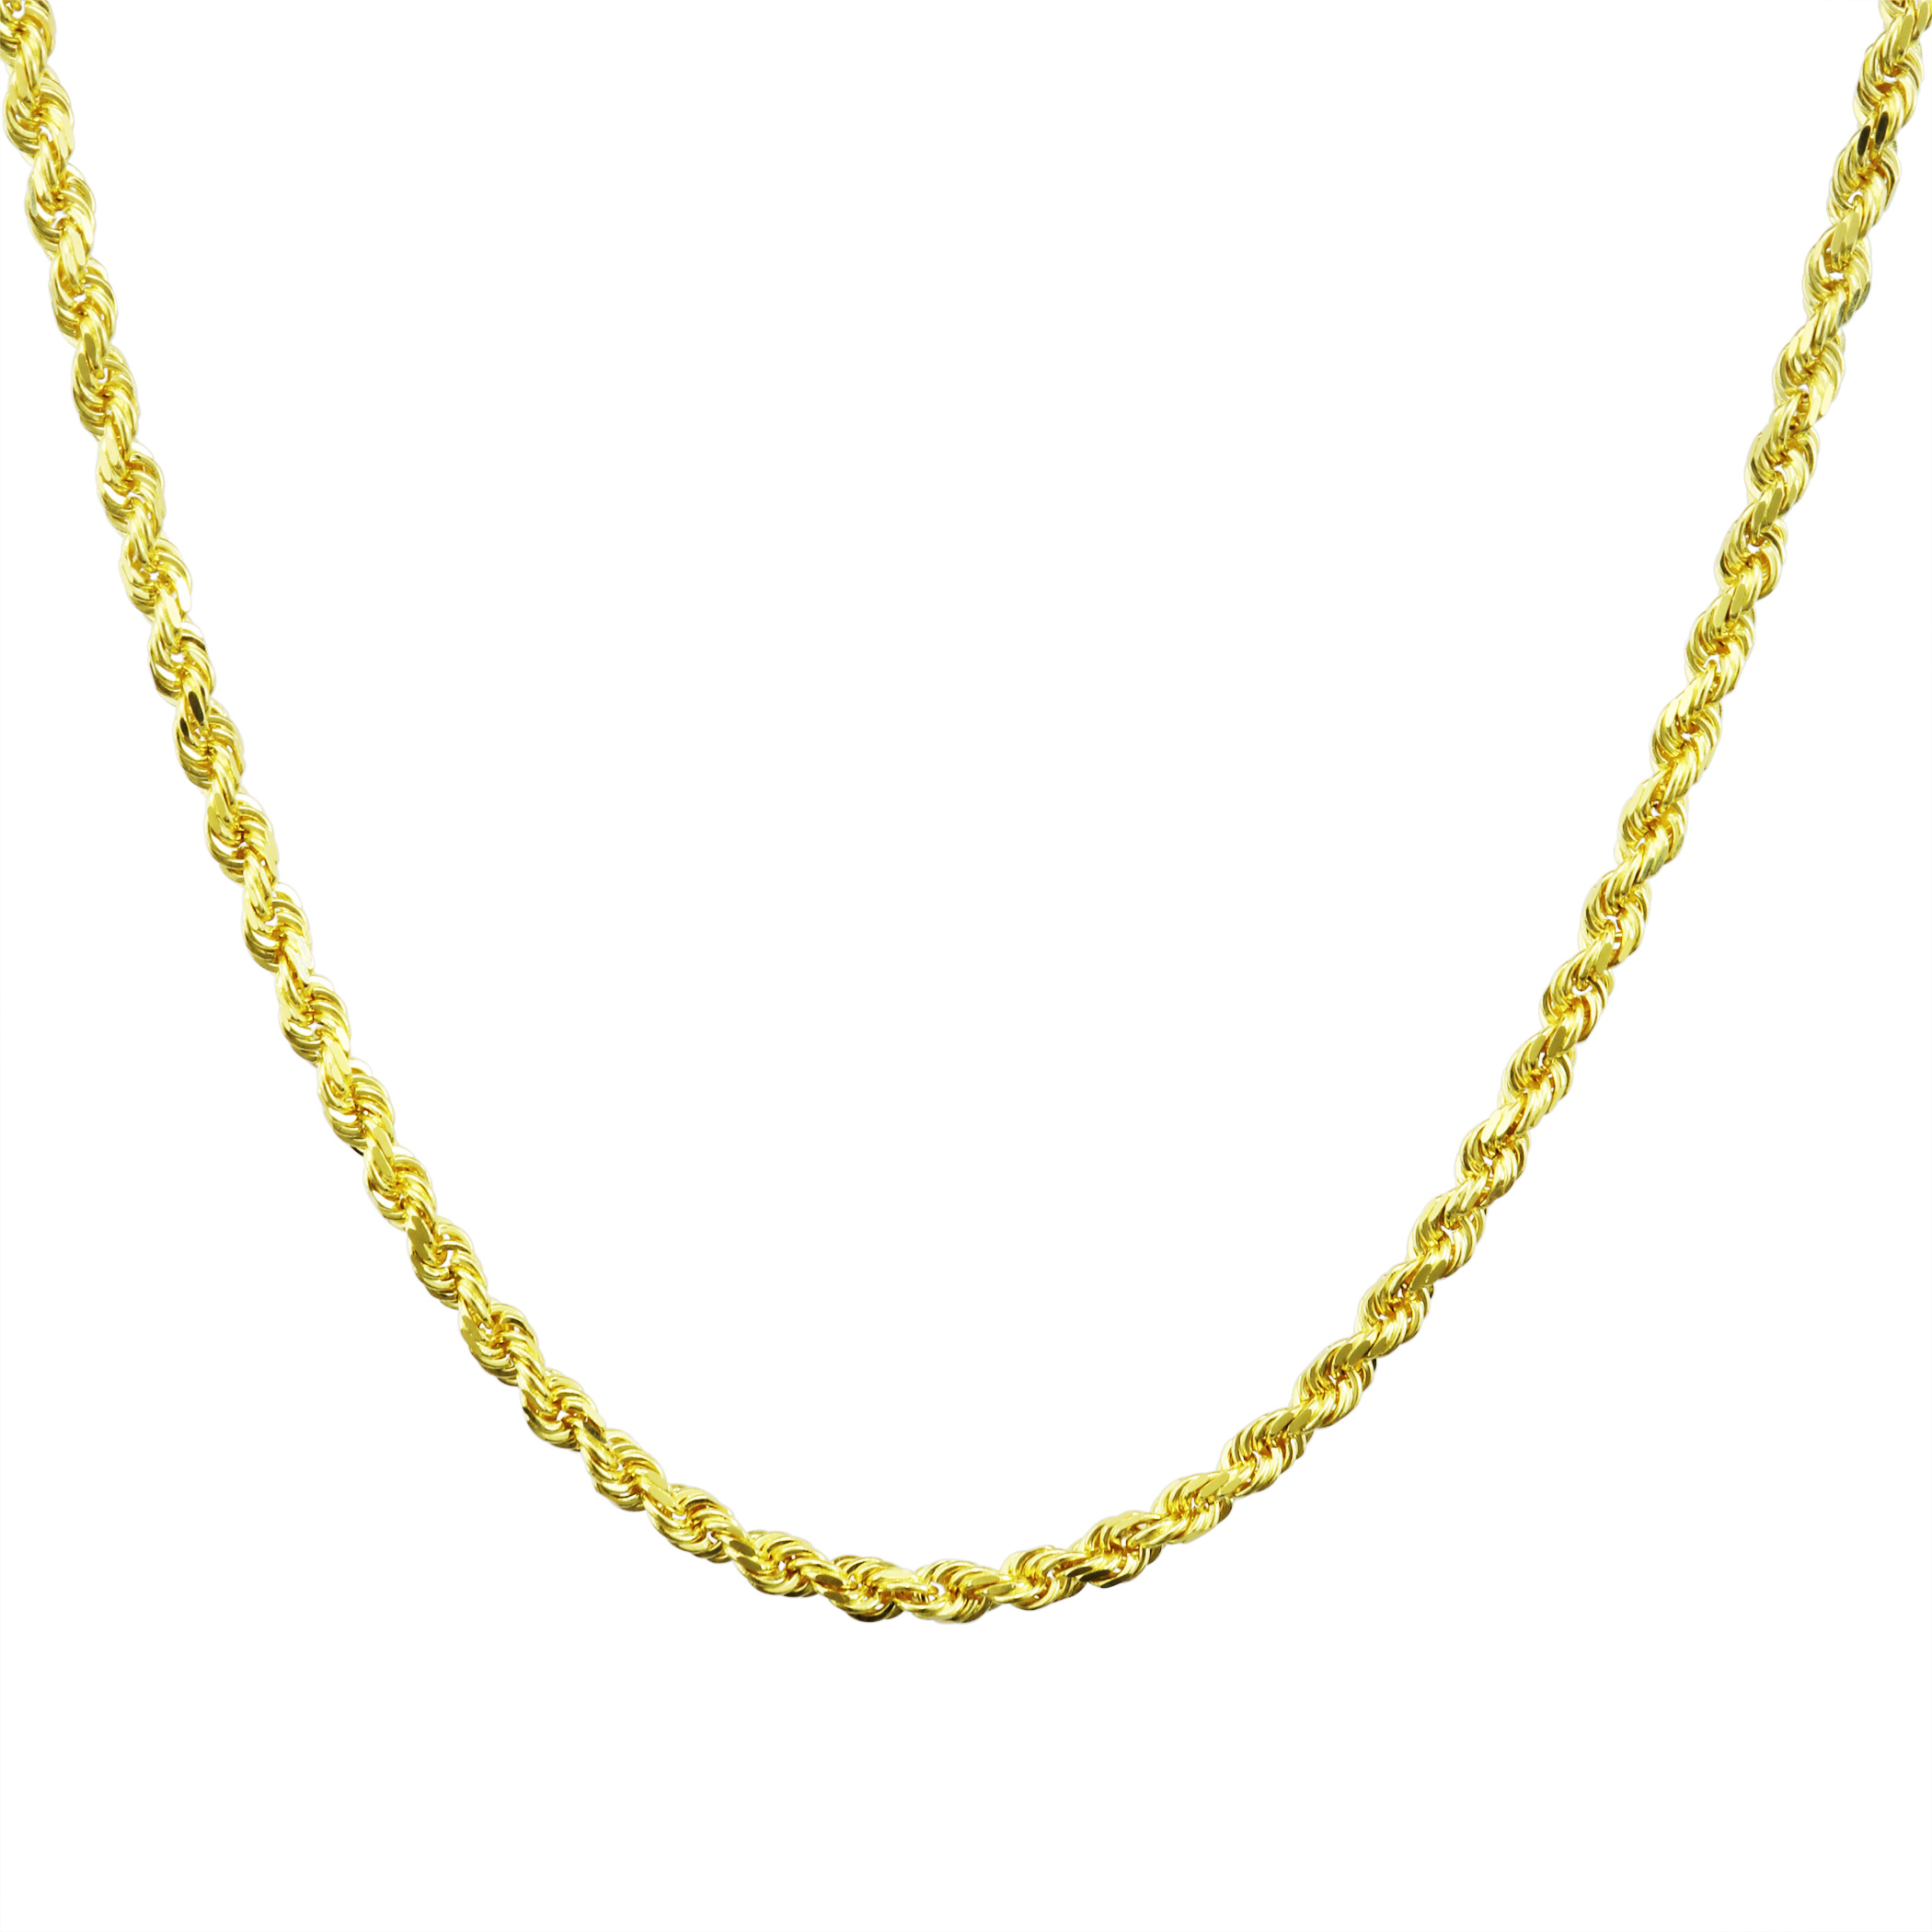 Real-14K-Yellow-Gold-3mm-Diamond-Cut-Rope-Chain-Necklace-Lobster-Clasp-18-034-30-034 thumbnail 21